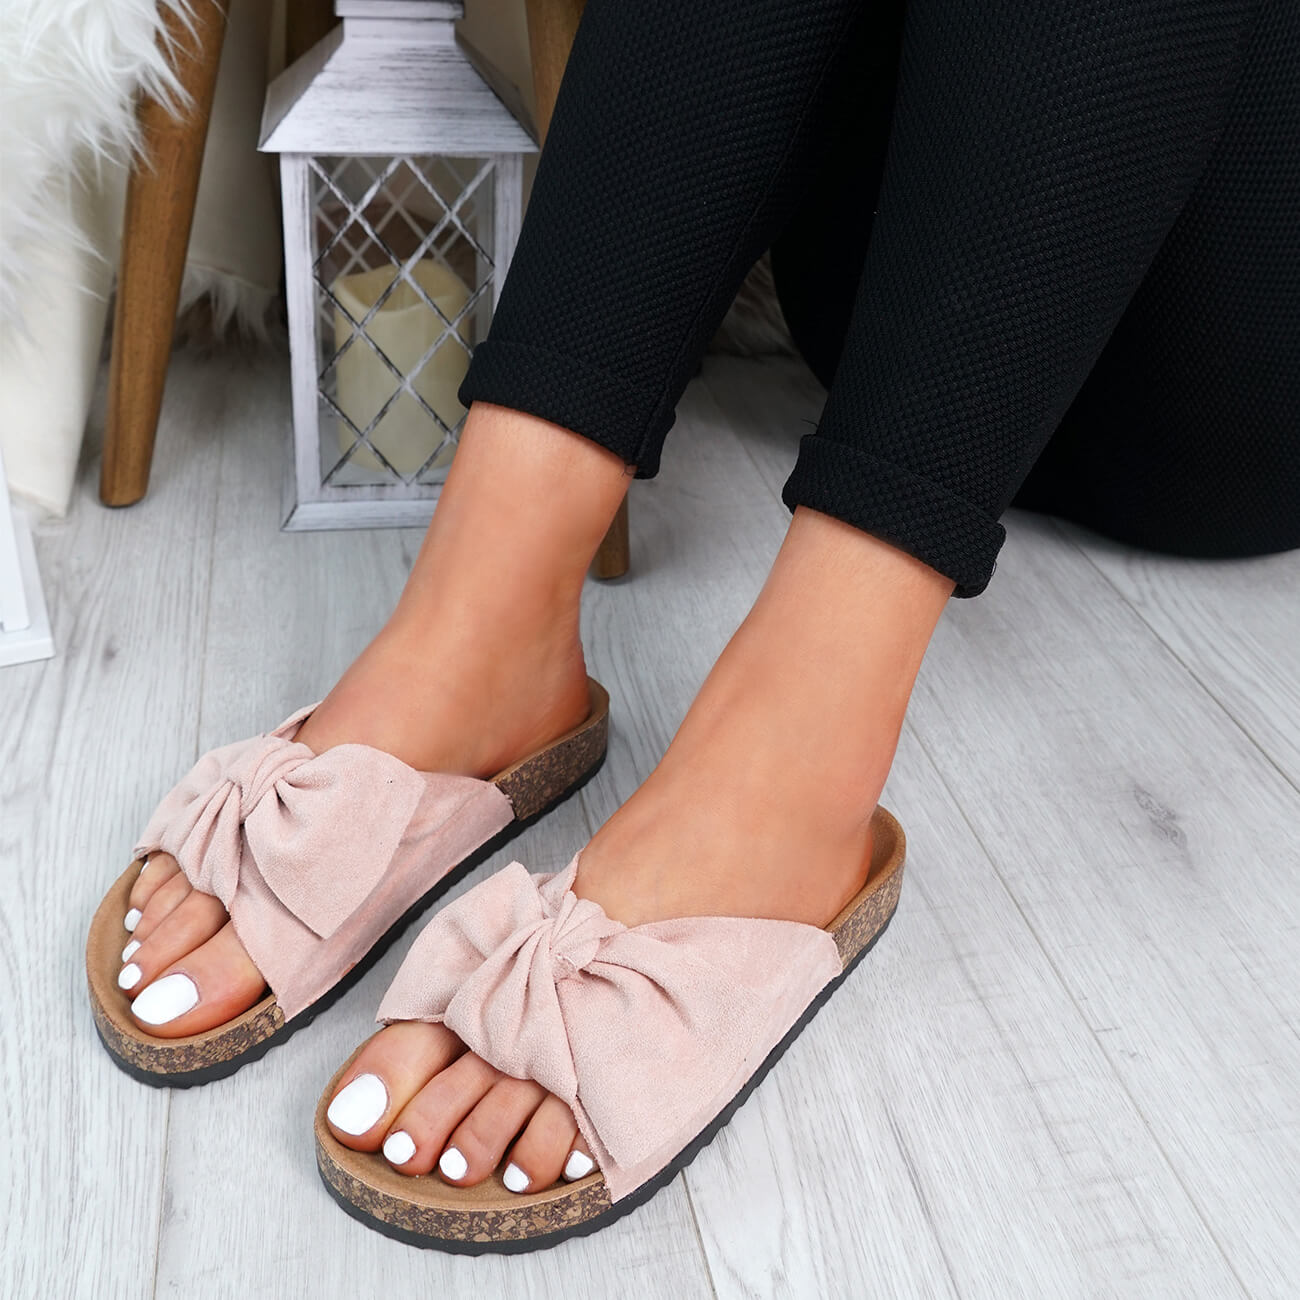 WOMENS-LADIES-SLIP-ON-FLAT-SANDALS-BOW-SLIDERS-SUMMER-CASUAL-SHOES-SIZE thumbnail 33